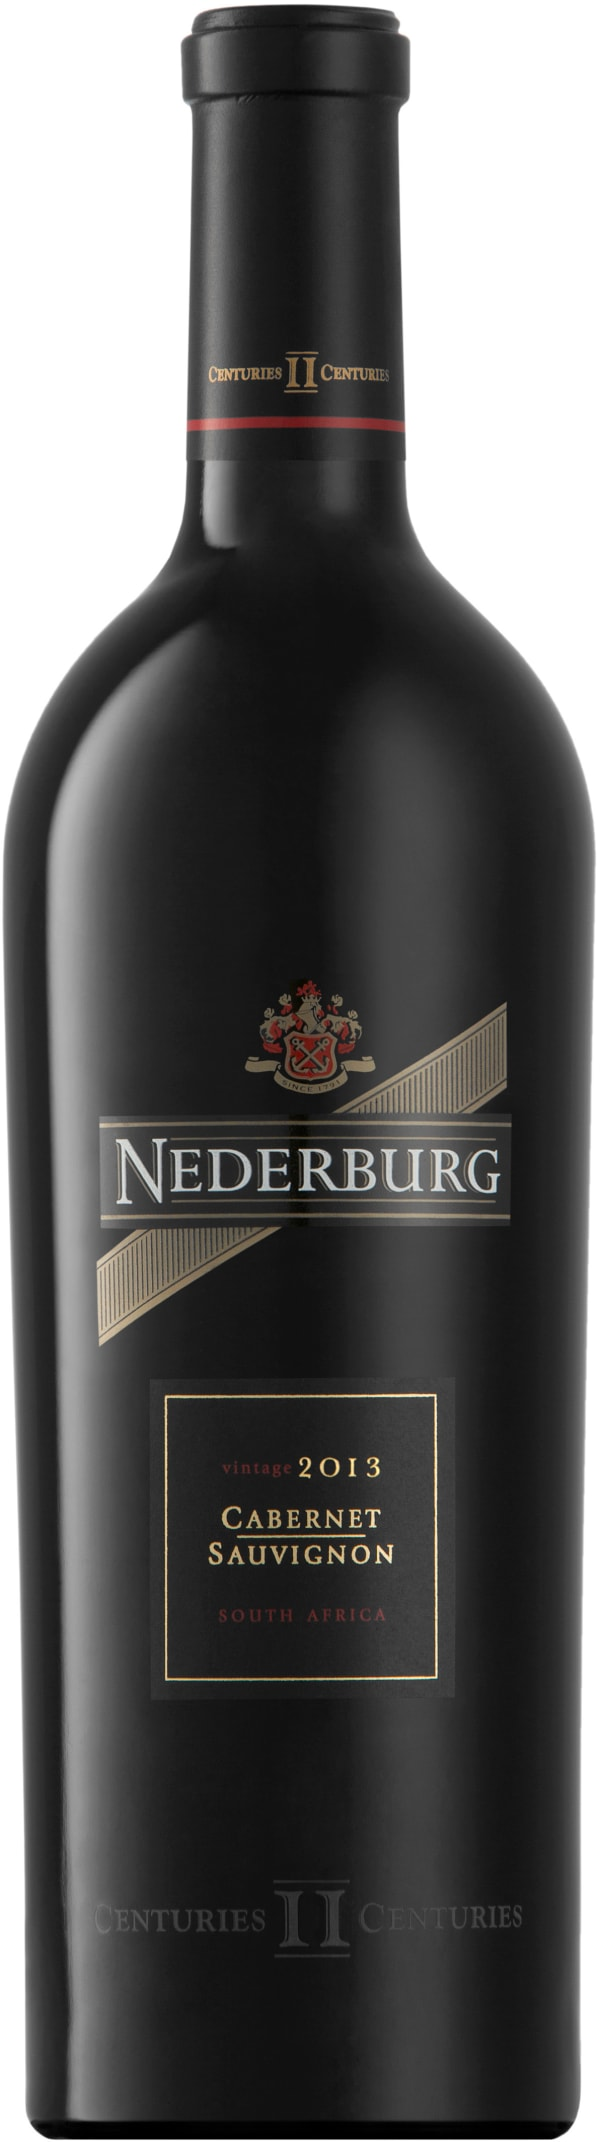 Nederburg Two Centuries Cabernet Sauvignon 2013